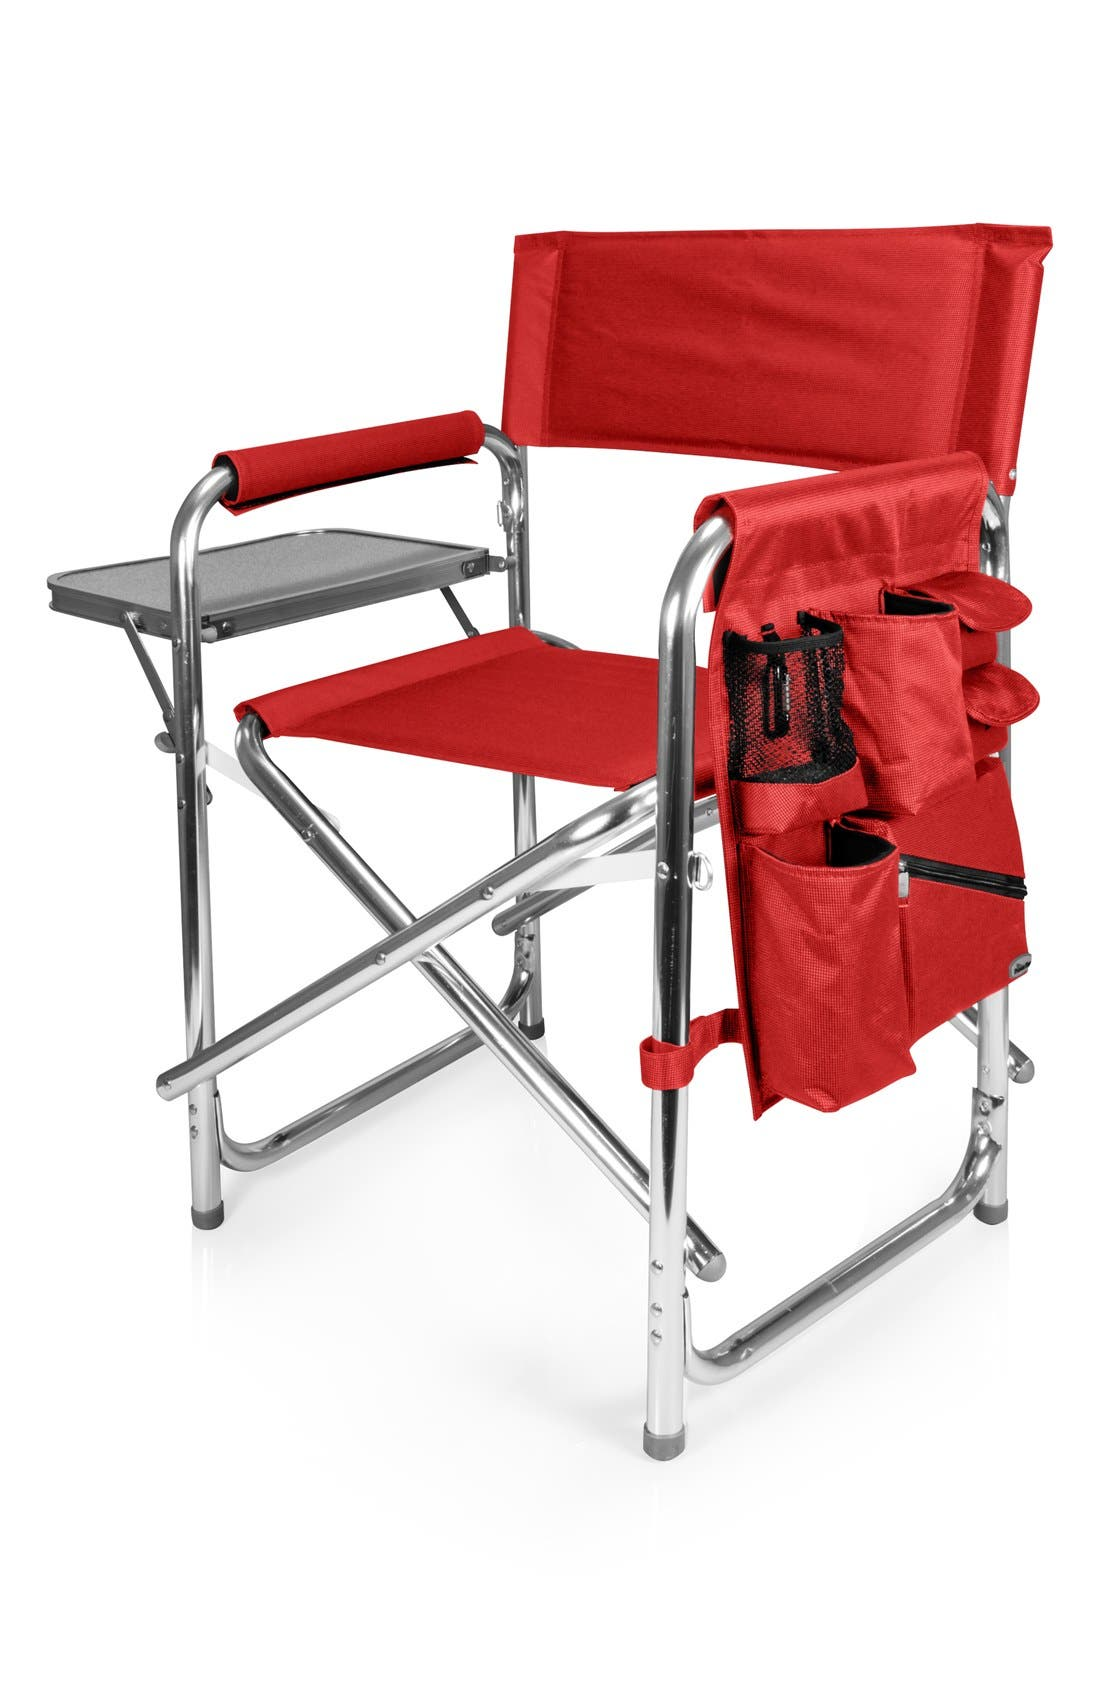 Main Image - Picnic Time 'Sports' Folding Chair